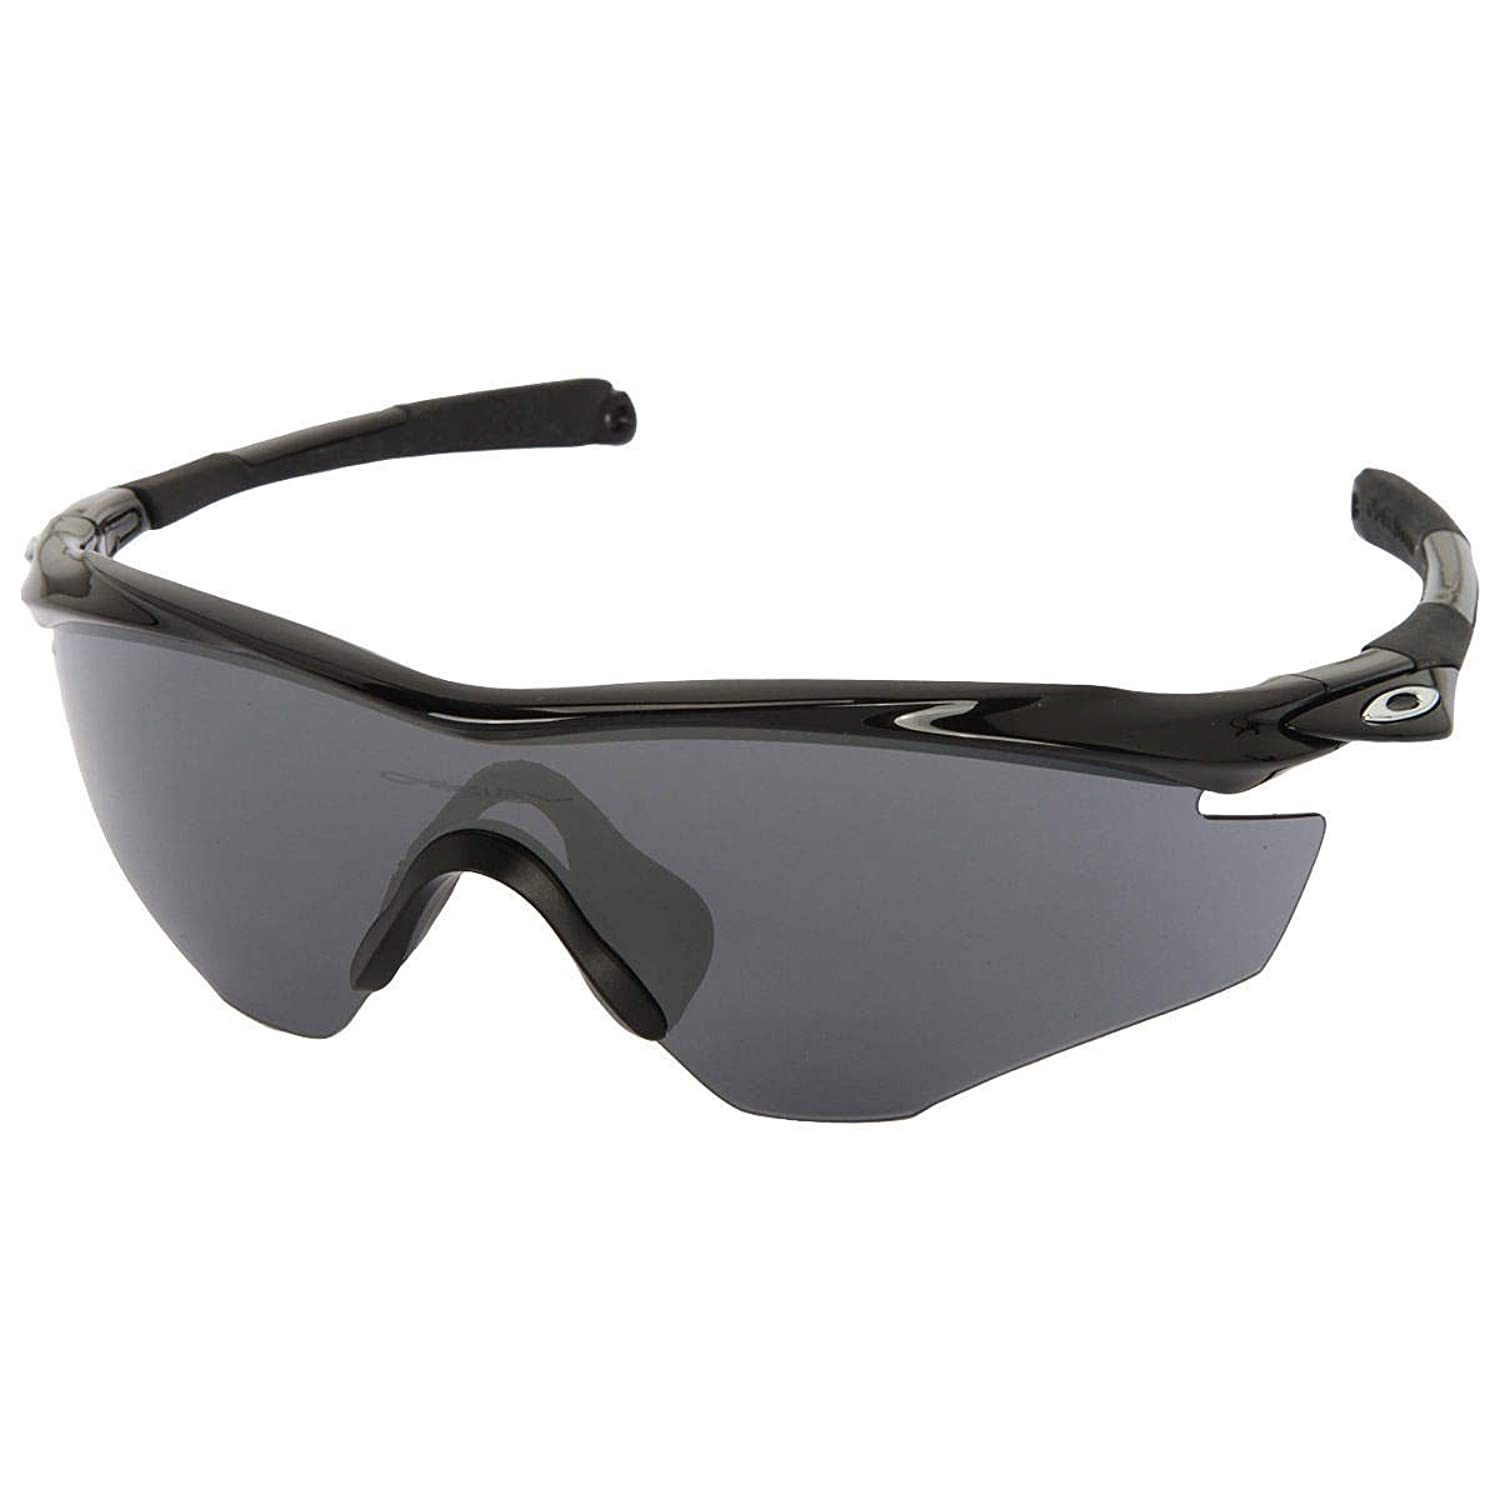 cheap oakley glass frames  oakley m2 frame non polarized iridium shield sunglasses